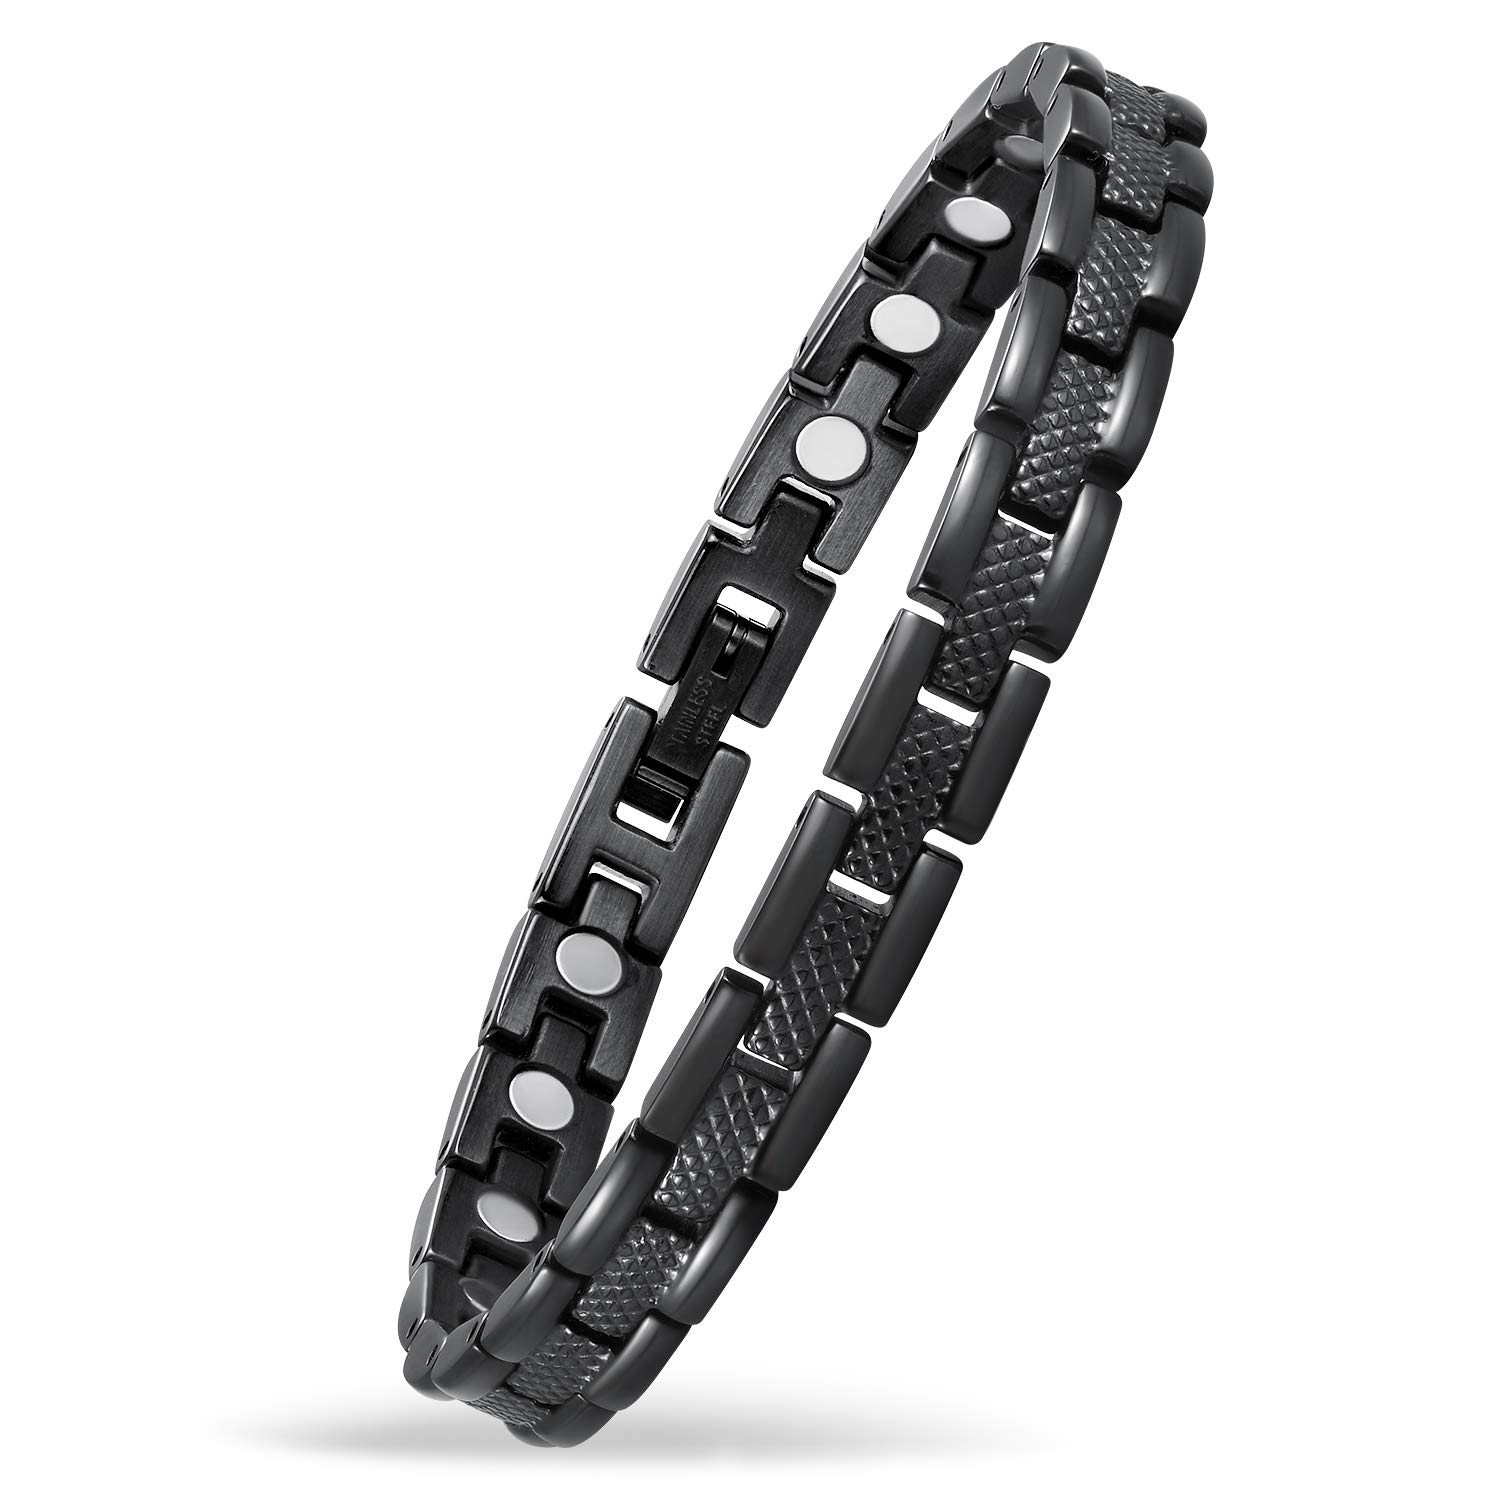 USWEL Pain Relief Bracelet for Women Magnetic Therapy Wrist Bracelet: Powers Arthritis and Carpal Tunnel with Free Removal Tool Black